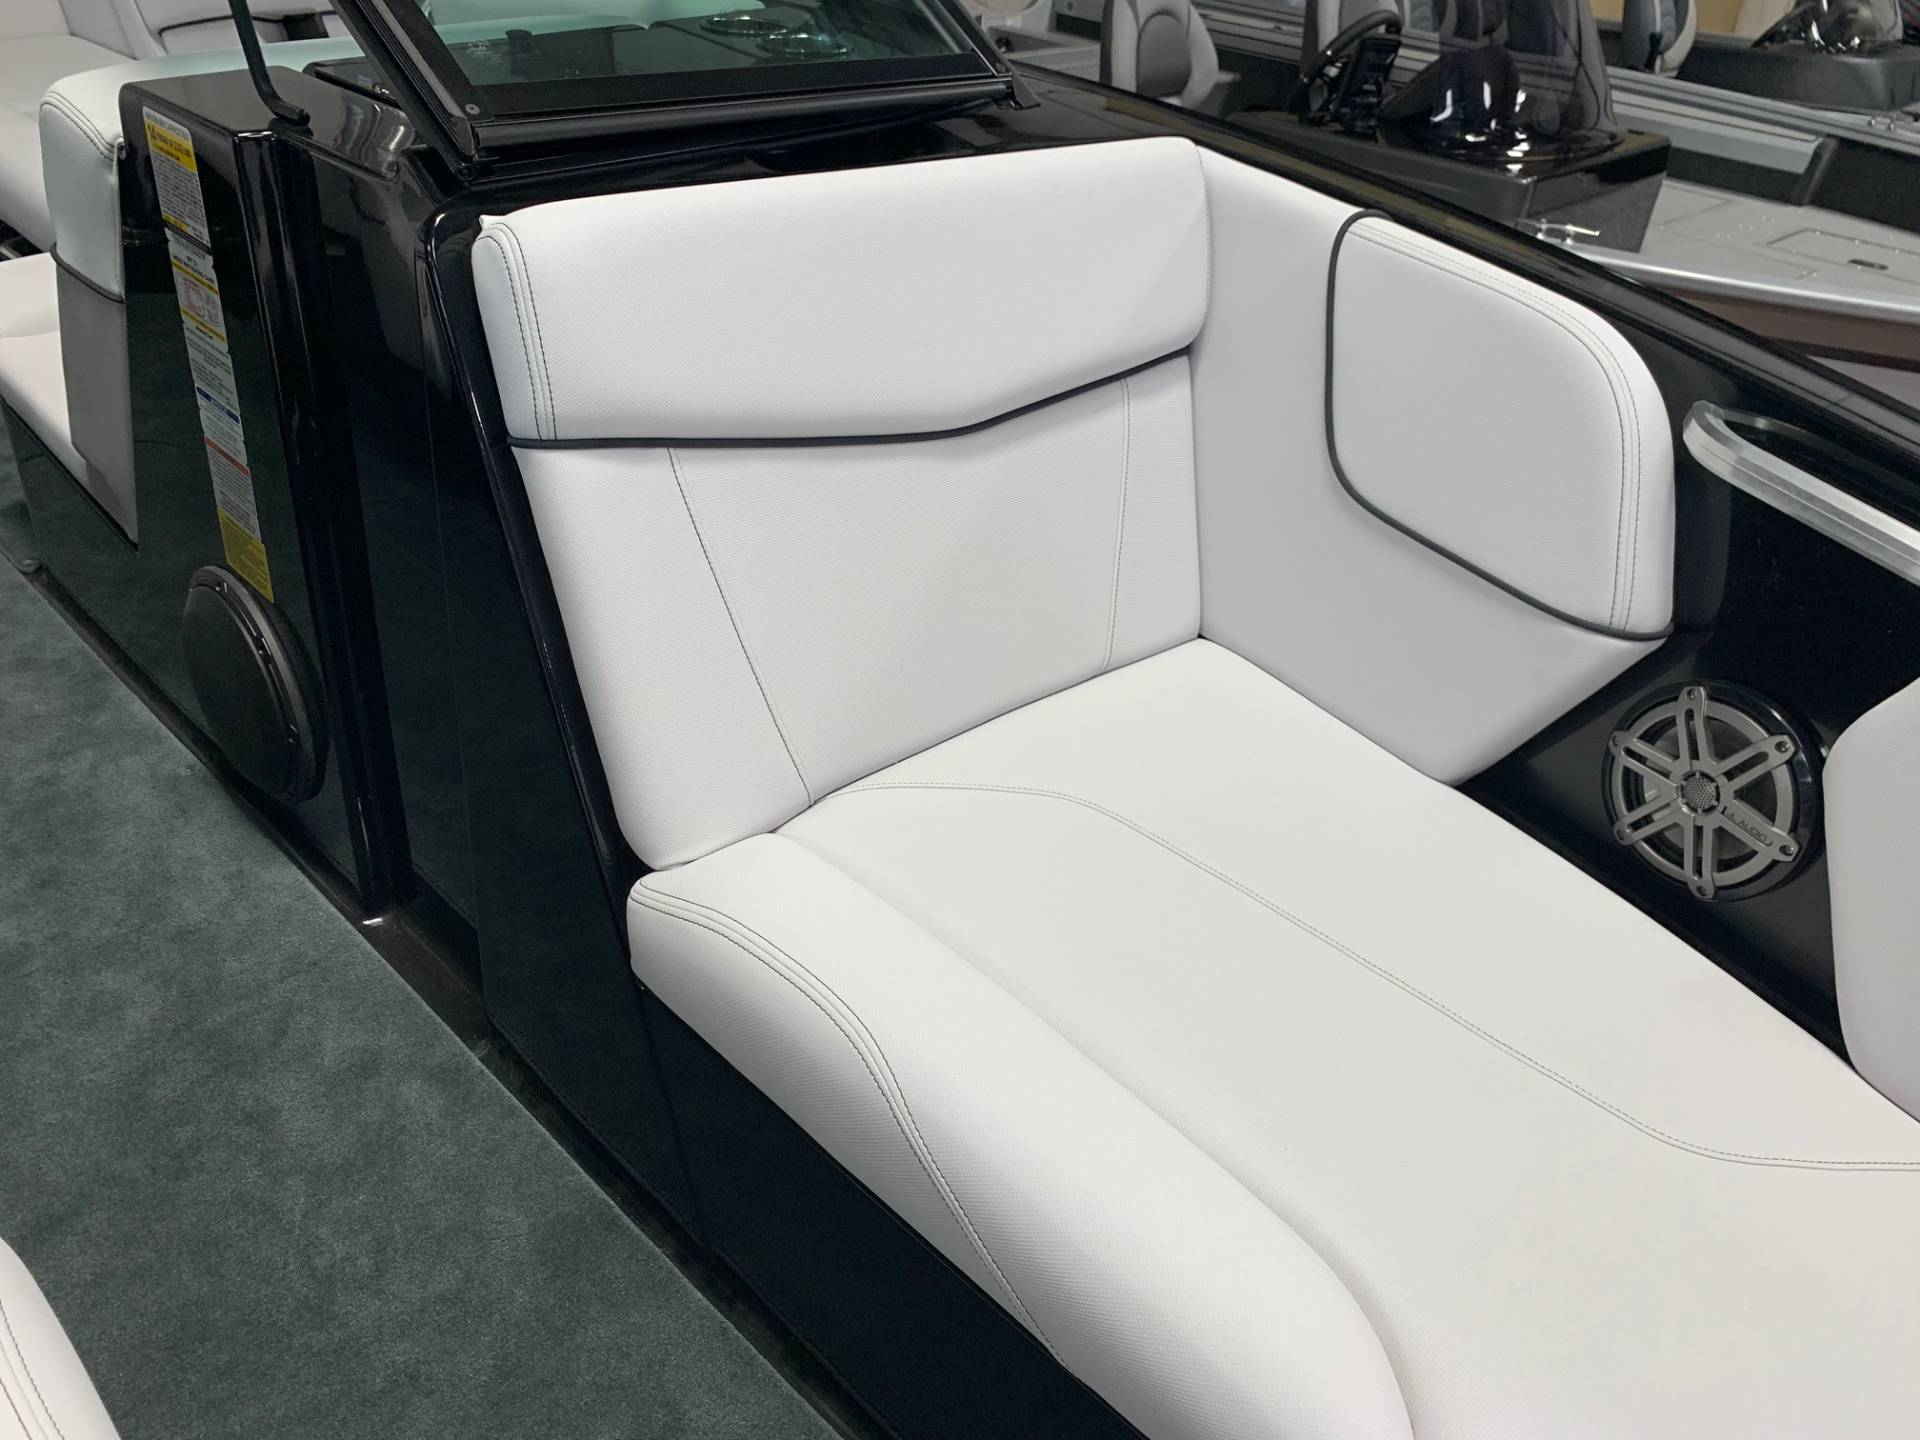 2019 Mastercraft NXT22 in Madera, California - Photo 18